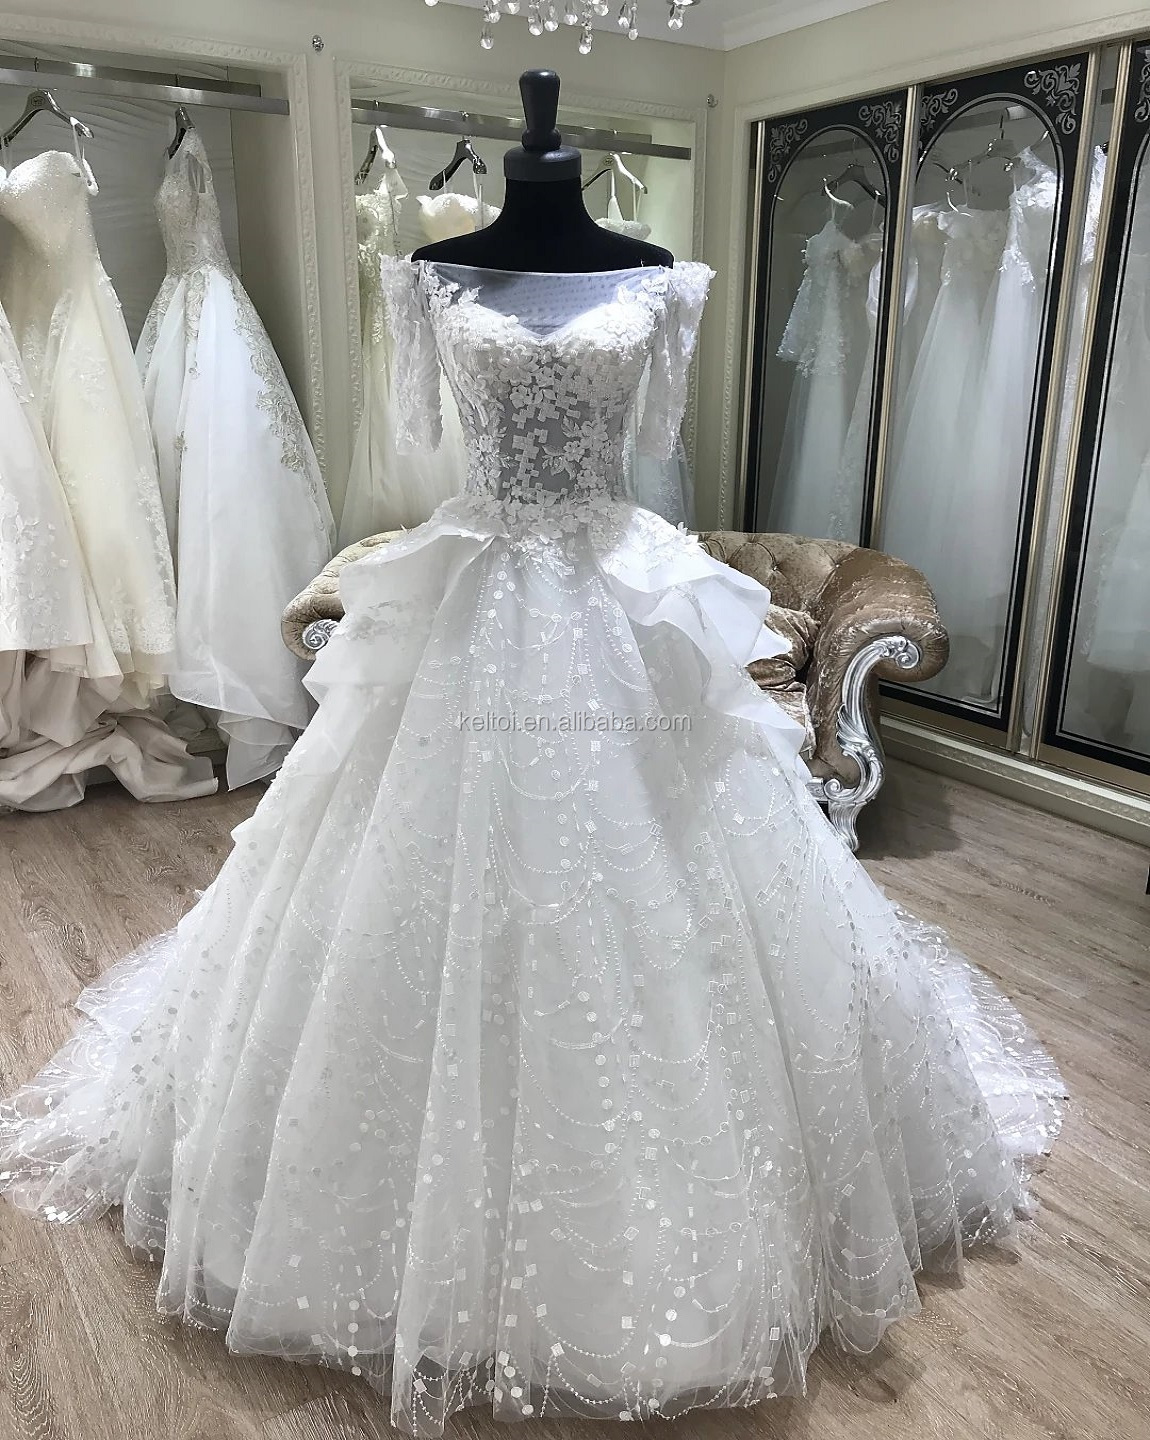 2018 Cheap Price Turkish Ball Gown Wedding Dresses - Buy Turkish ...